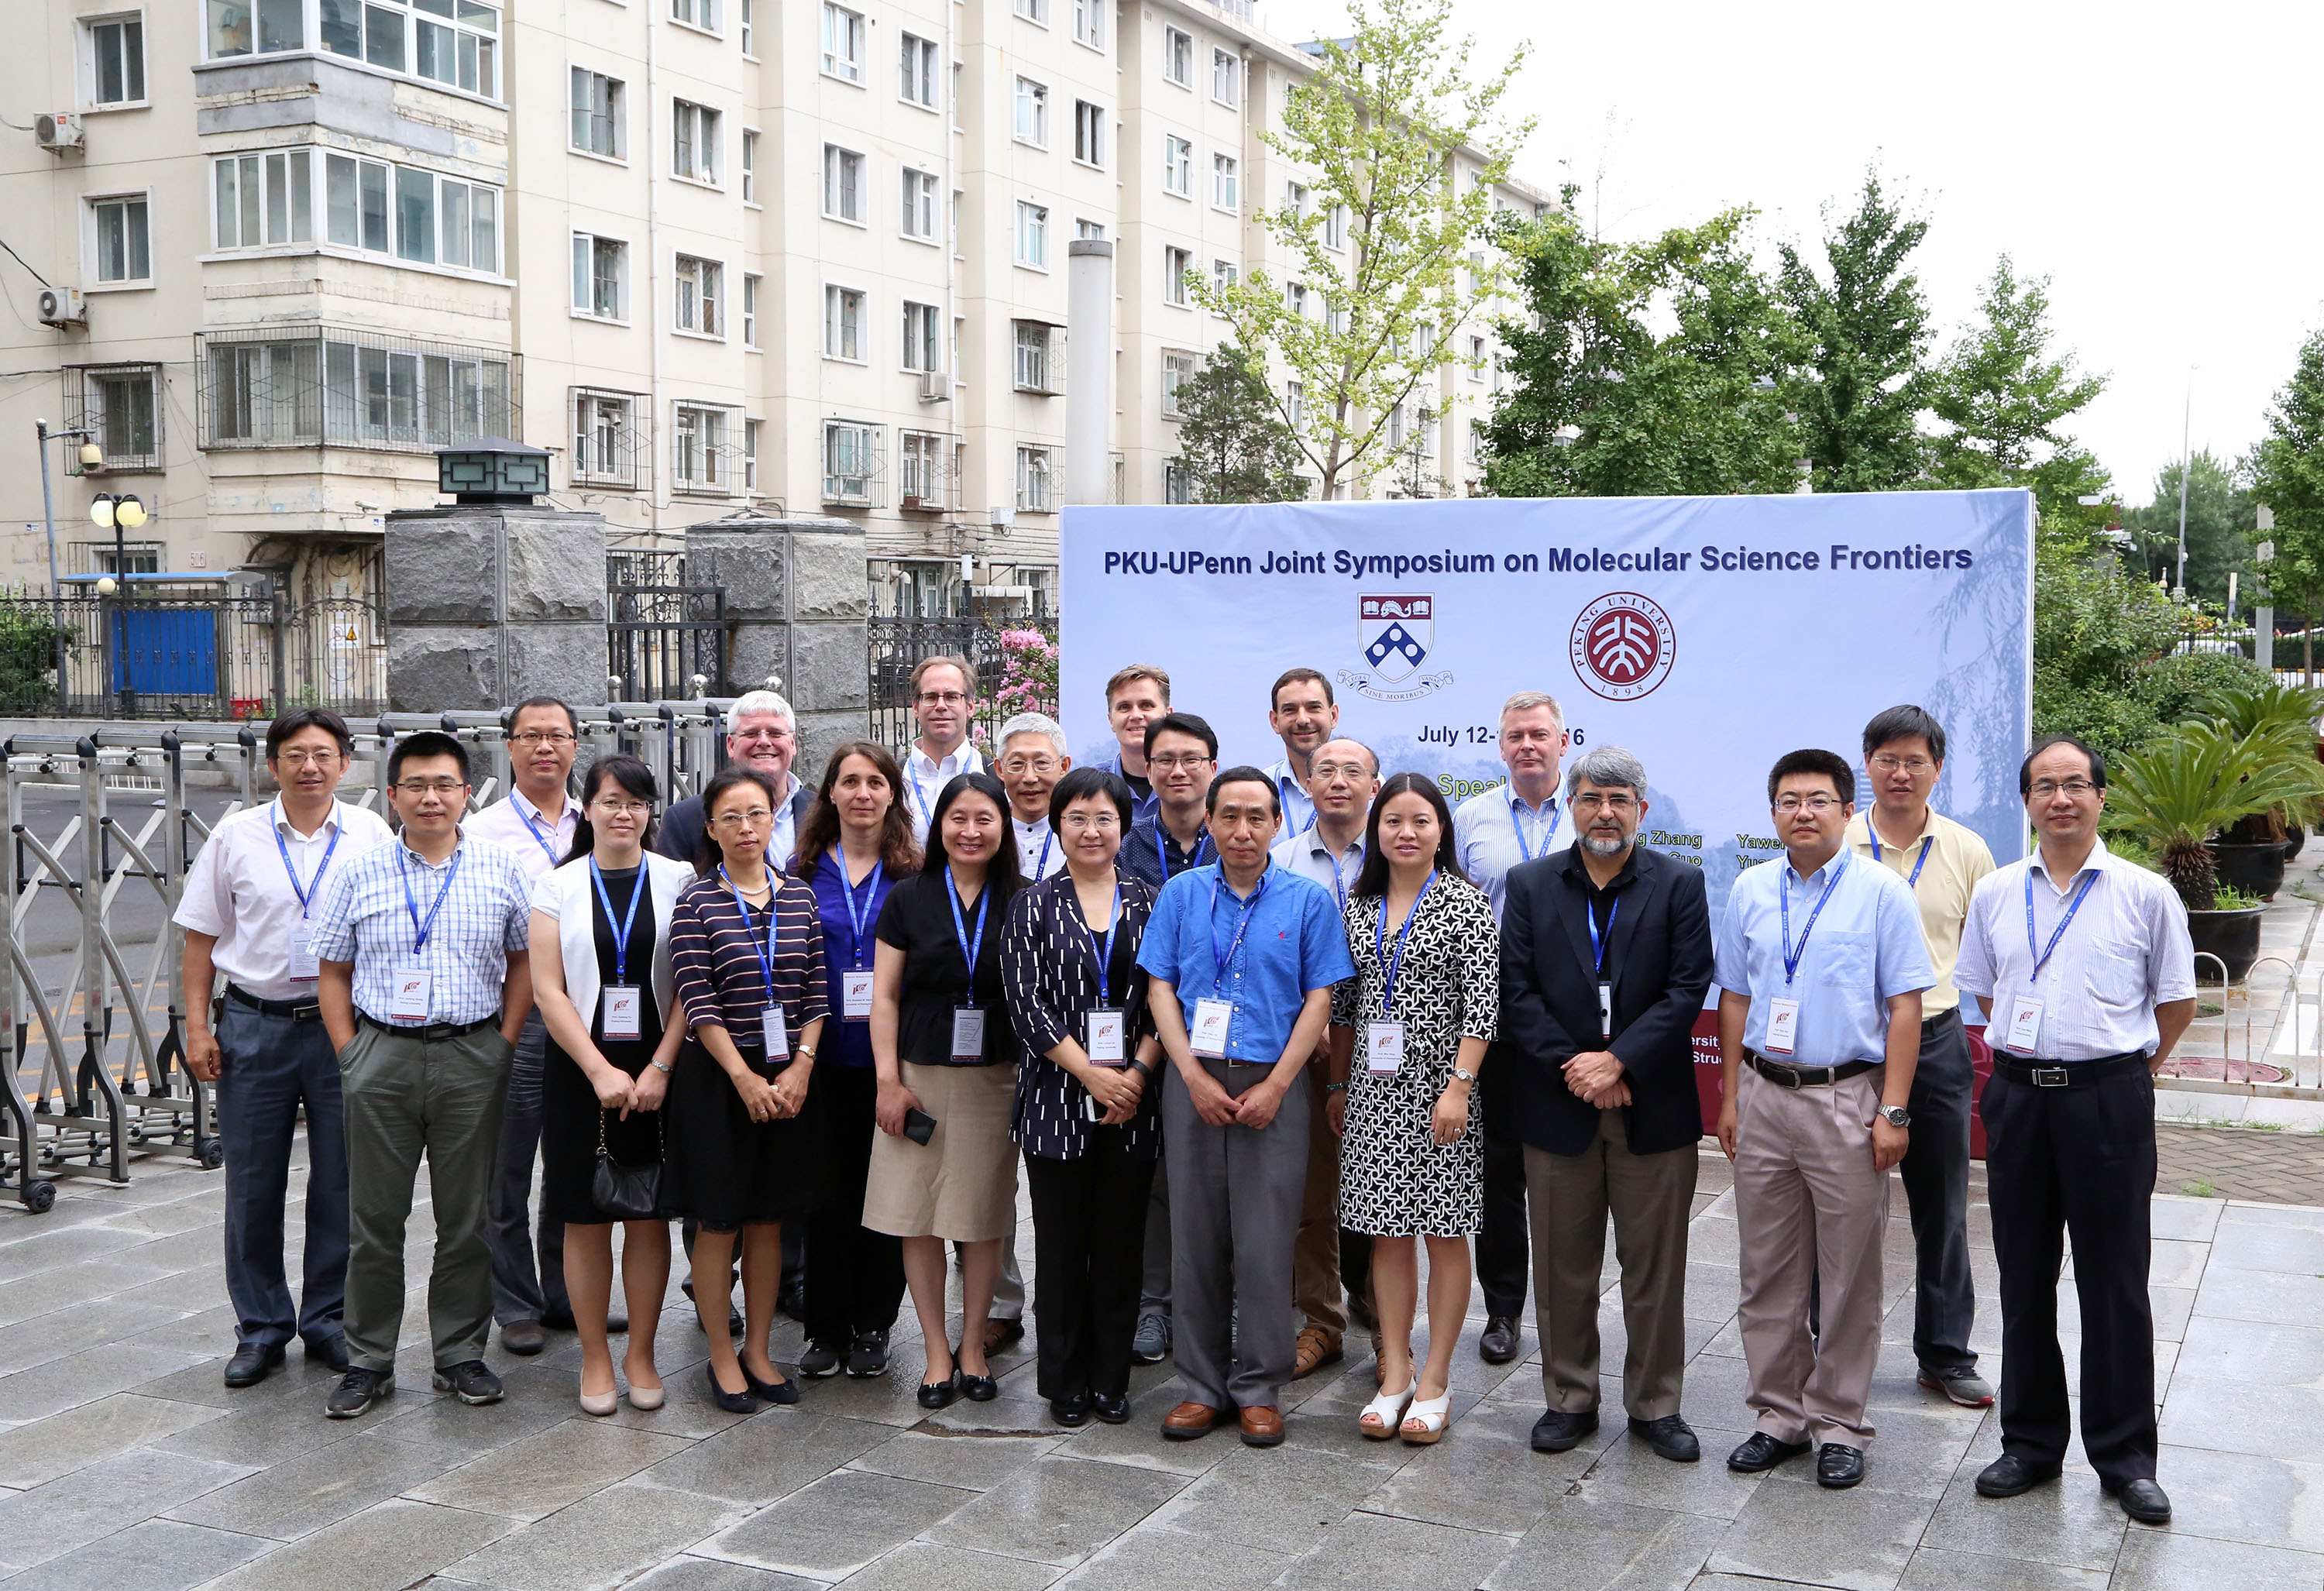 PKU-Penn Joint Symposium on Molecular Science Frontiers